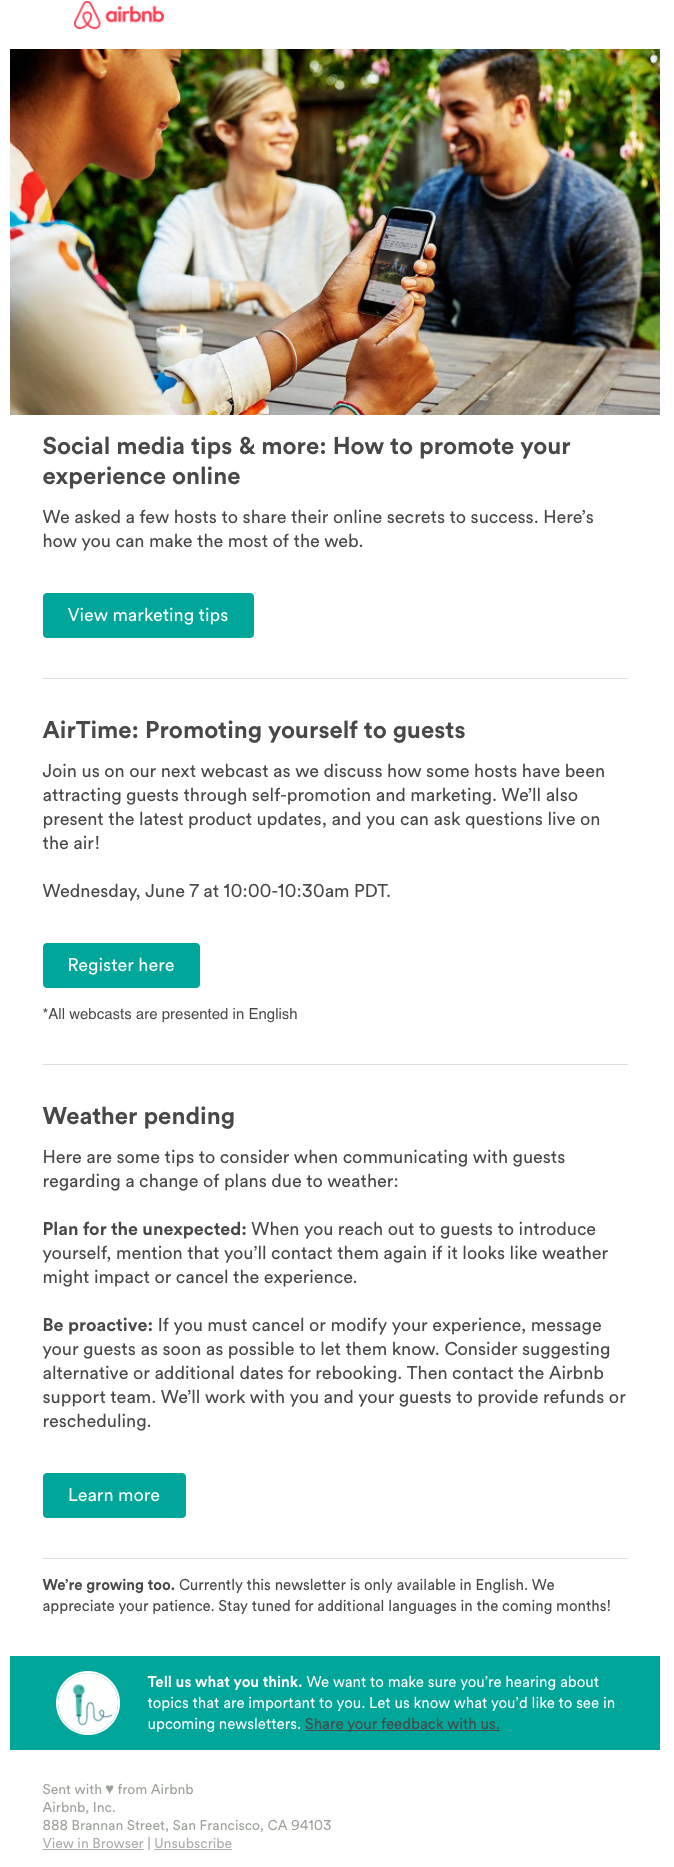 Alexandra Friedman - Writing Samples - Airbnb Emails & Newsletters